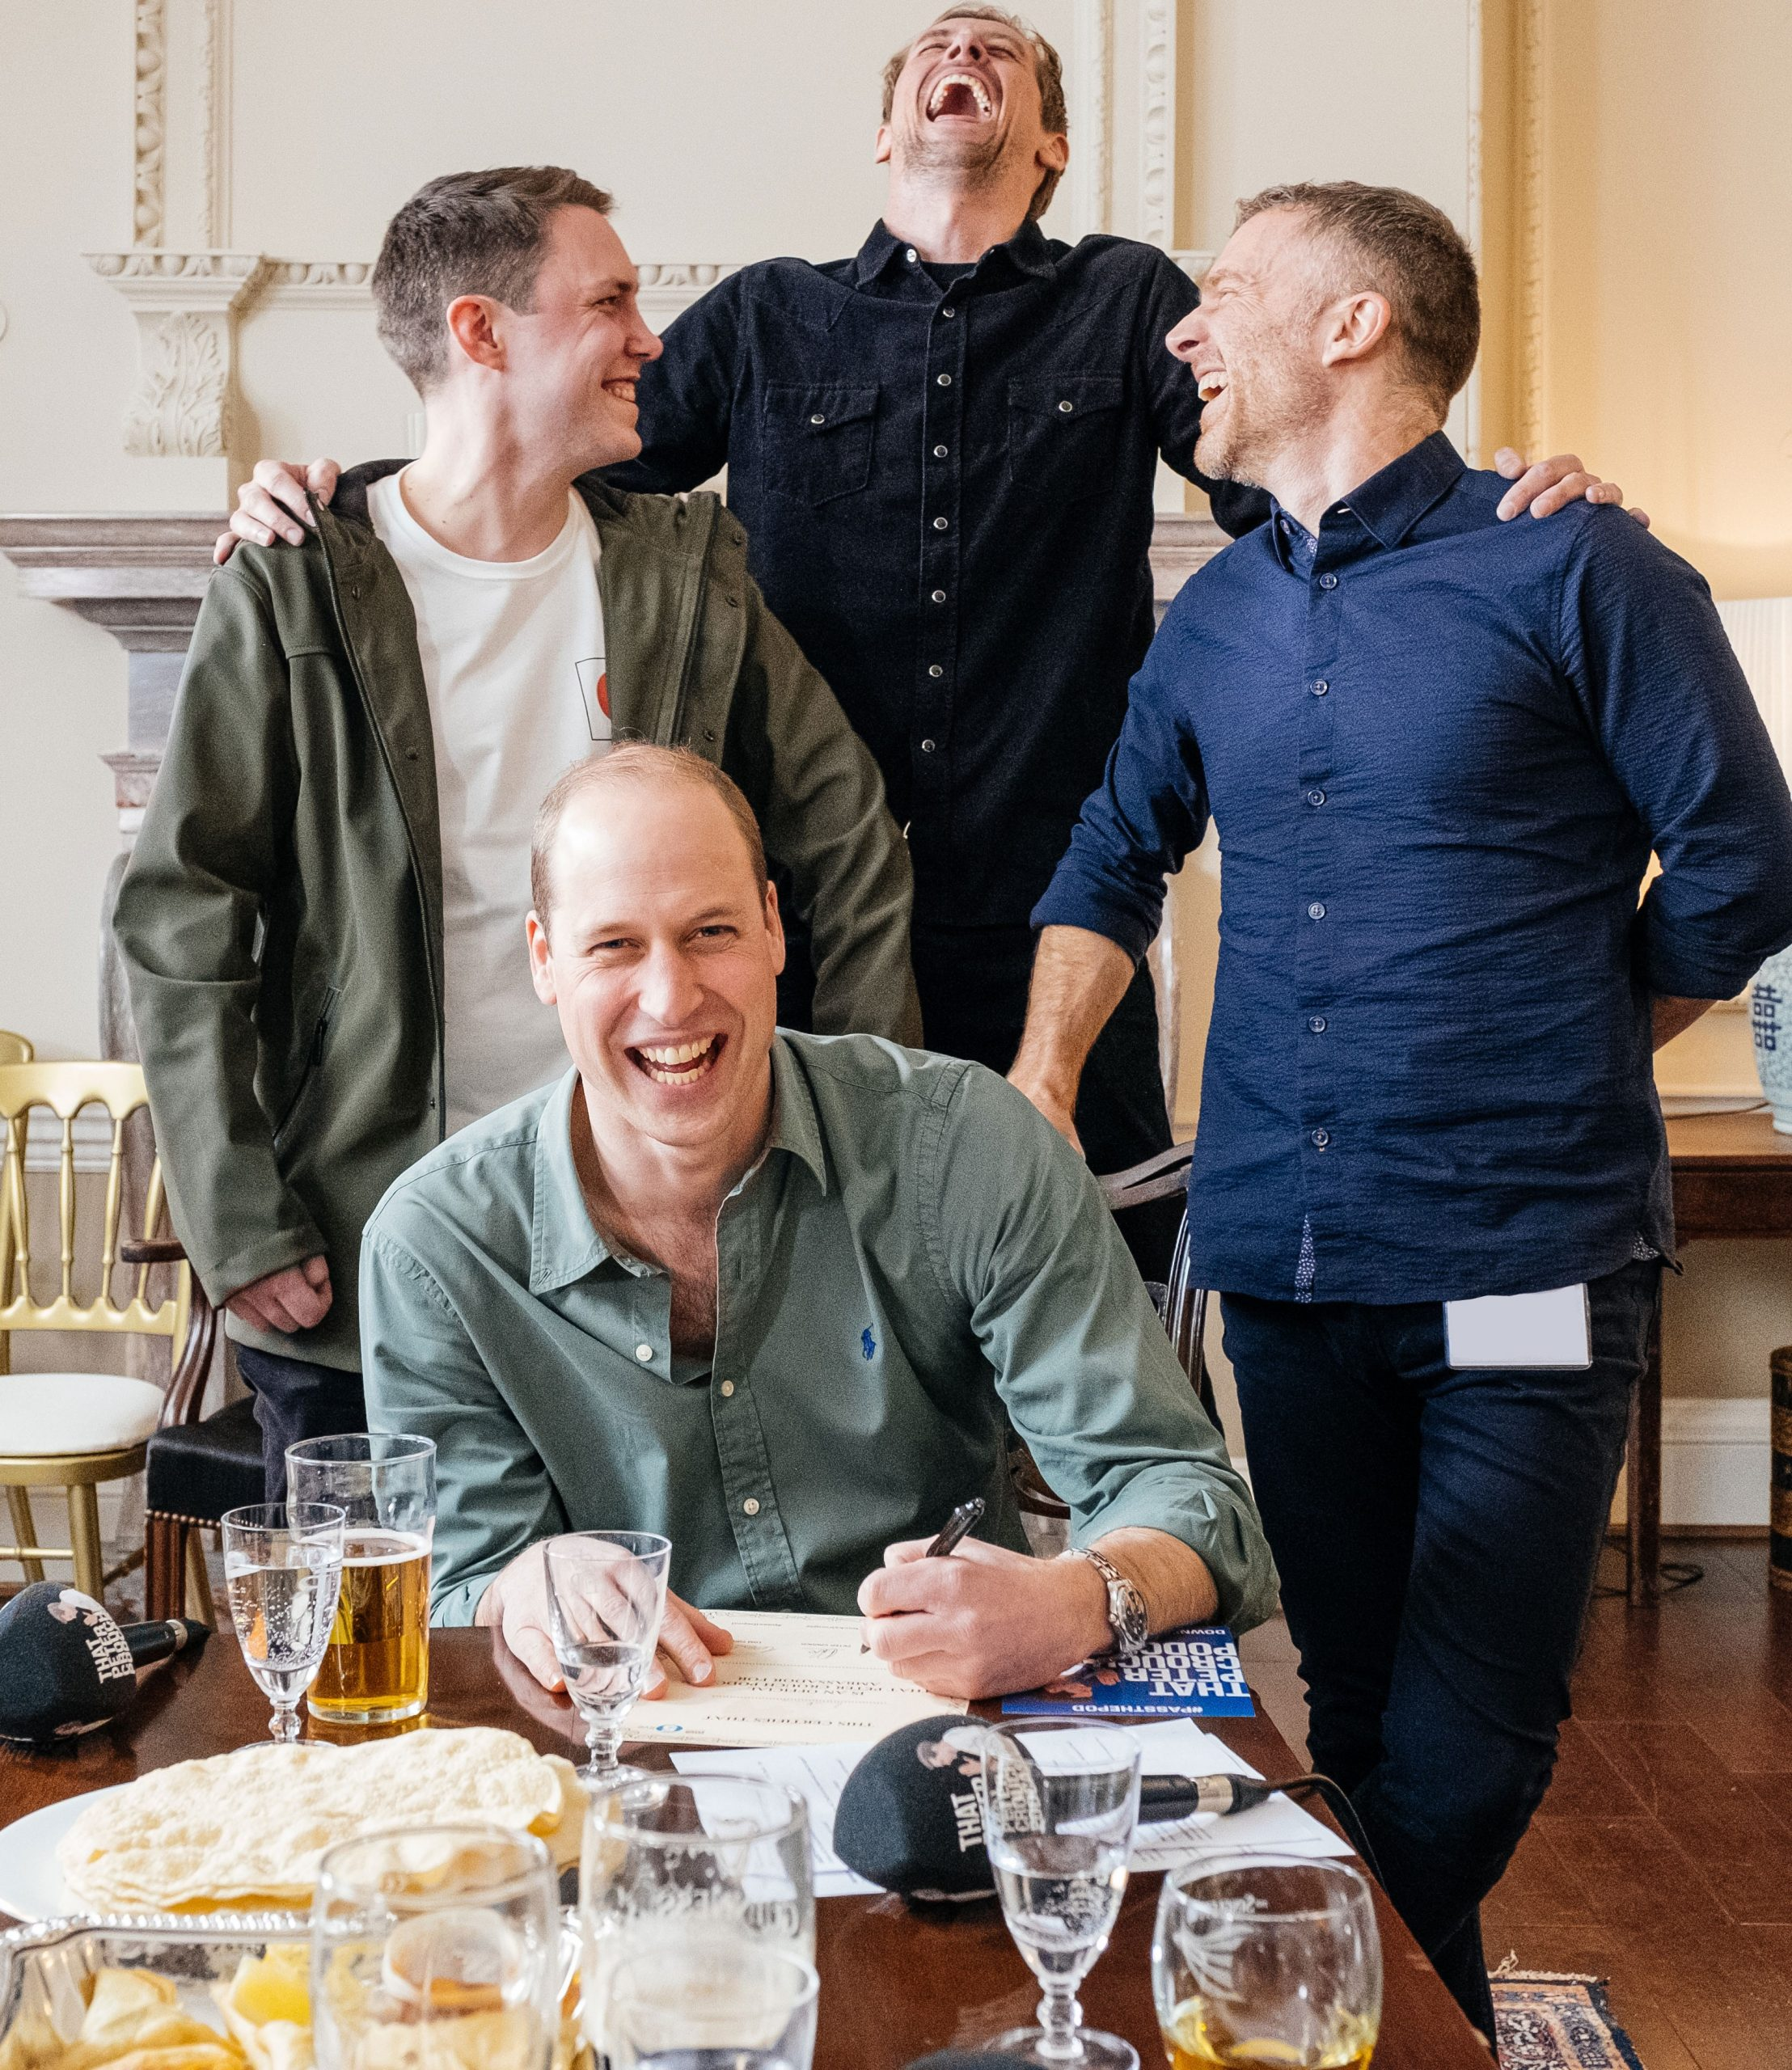 Prince William with the 'That Peter Crouch Podcast' team at Kensington Palace. (Photo: Twitter/@KensingtonRoyal)